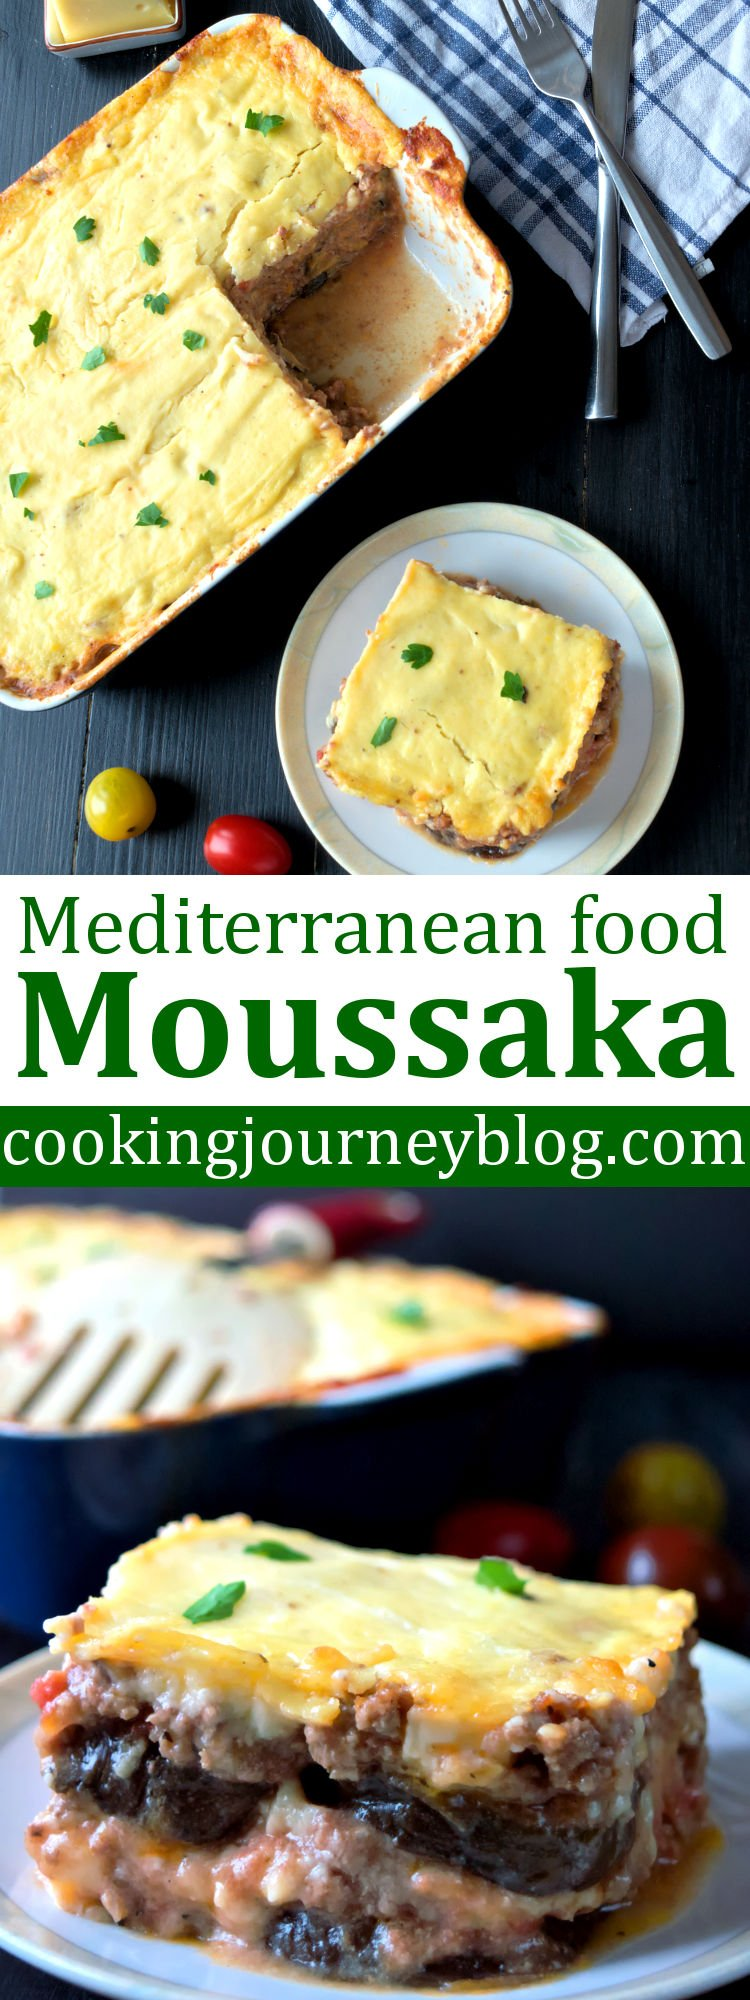 Eggplant moussaka is a great dish for dinner! Greek food recipes are always tasty and full of Mediterranean flavor. If you love lasagna and casseroles, this moussaka is definitely one of dinner ideas to try!